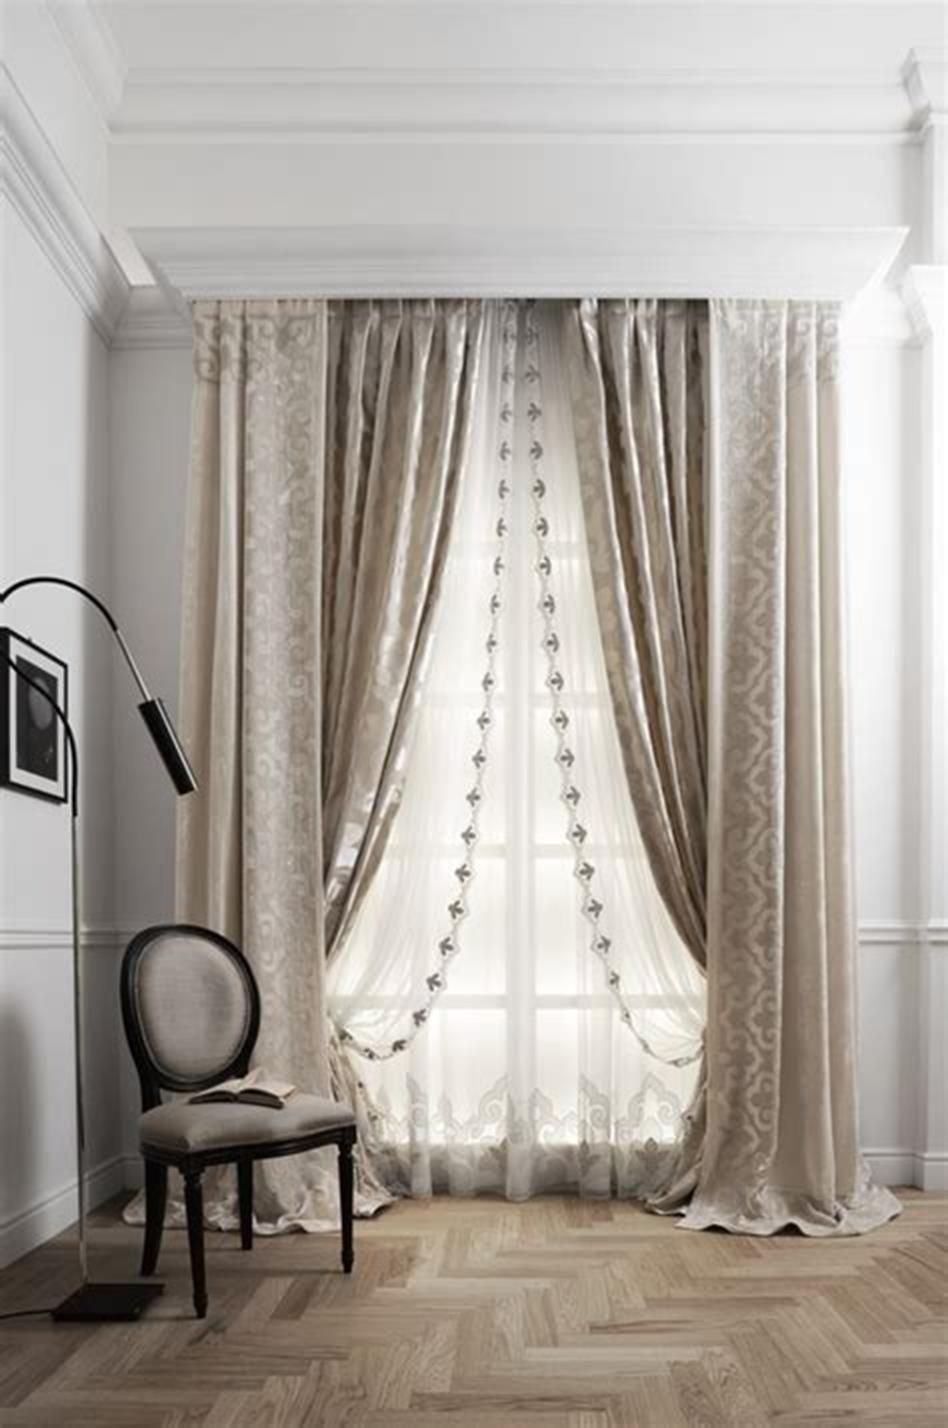 21 Creative Curtains And Window Coverings Ideas 7 Luxury Curtains Home Curtains Classic Curtains